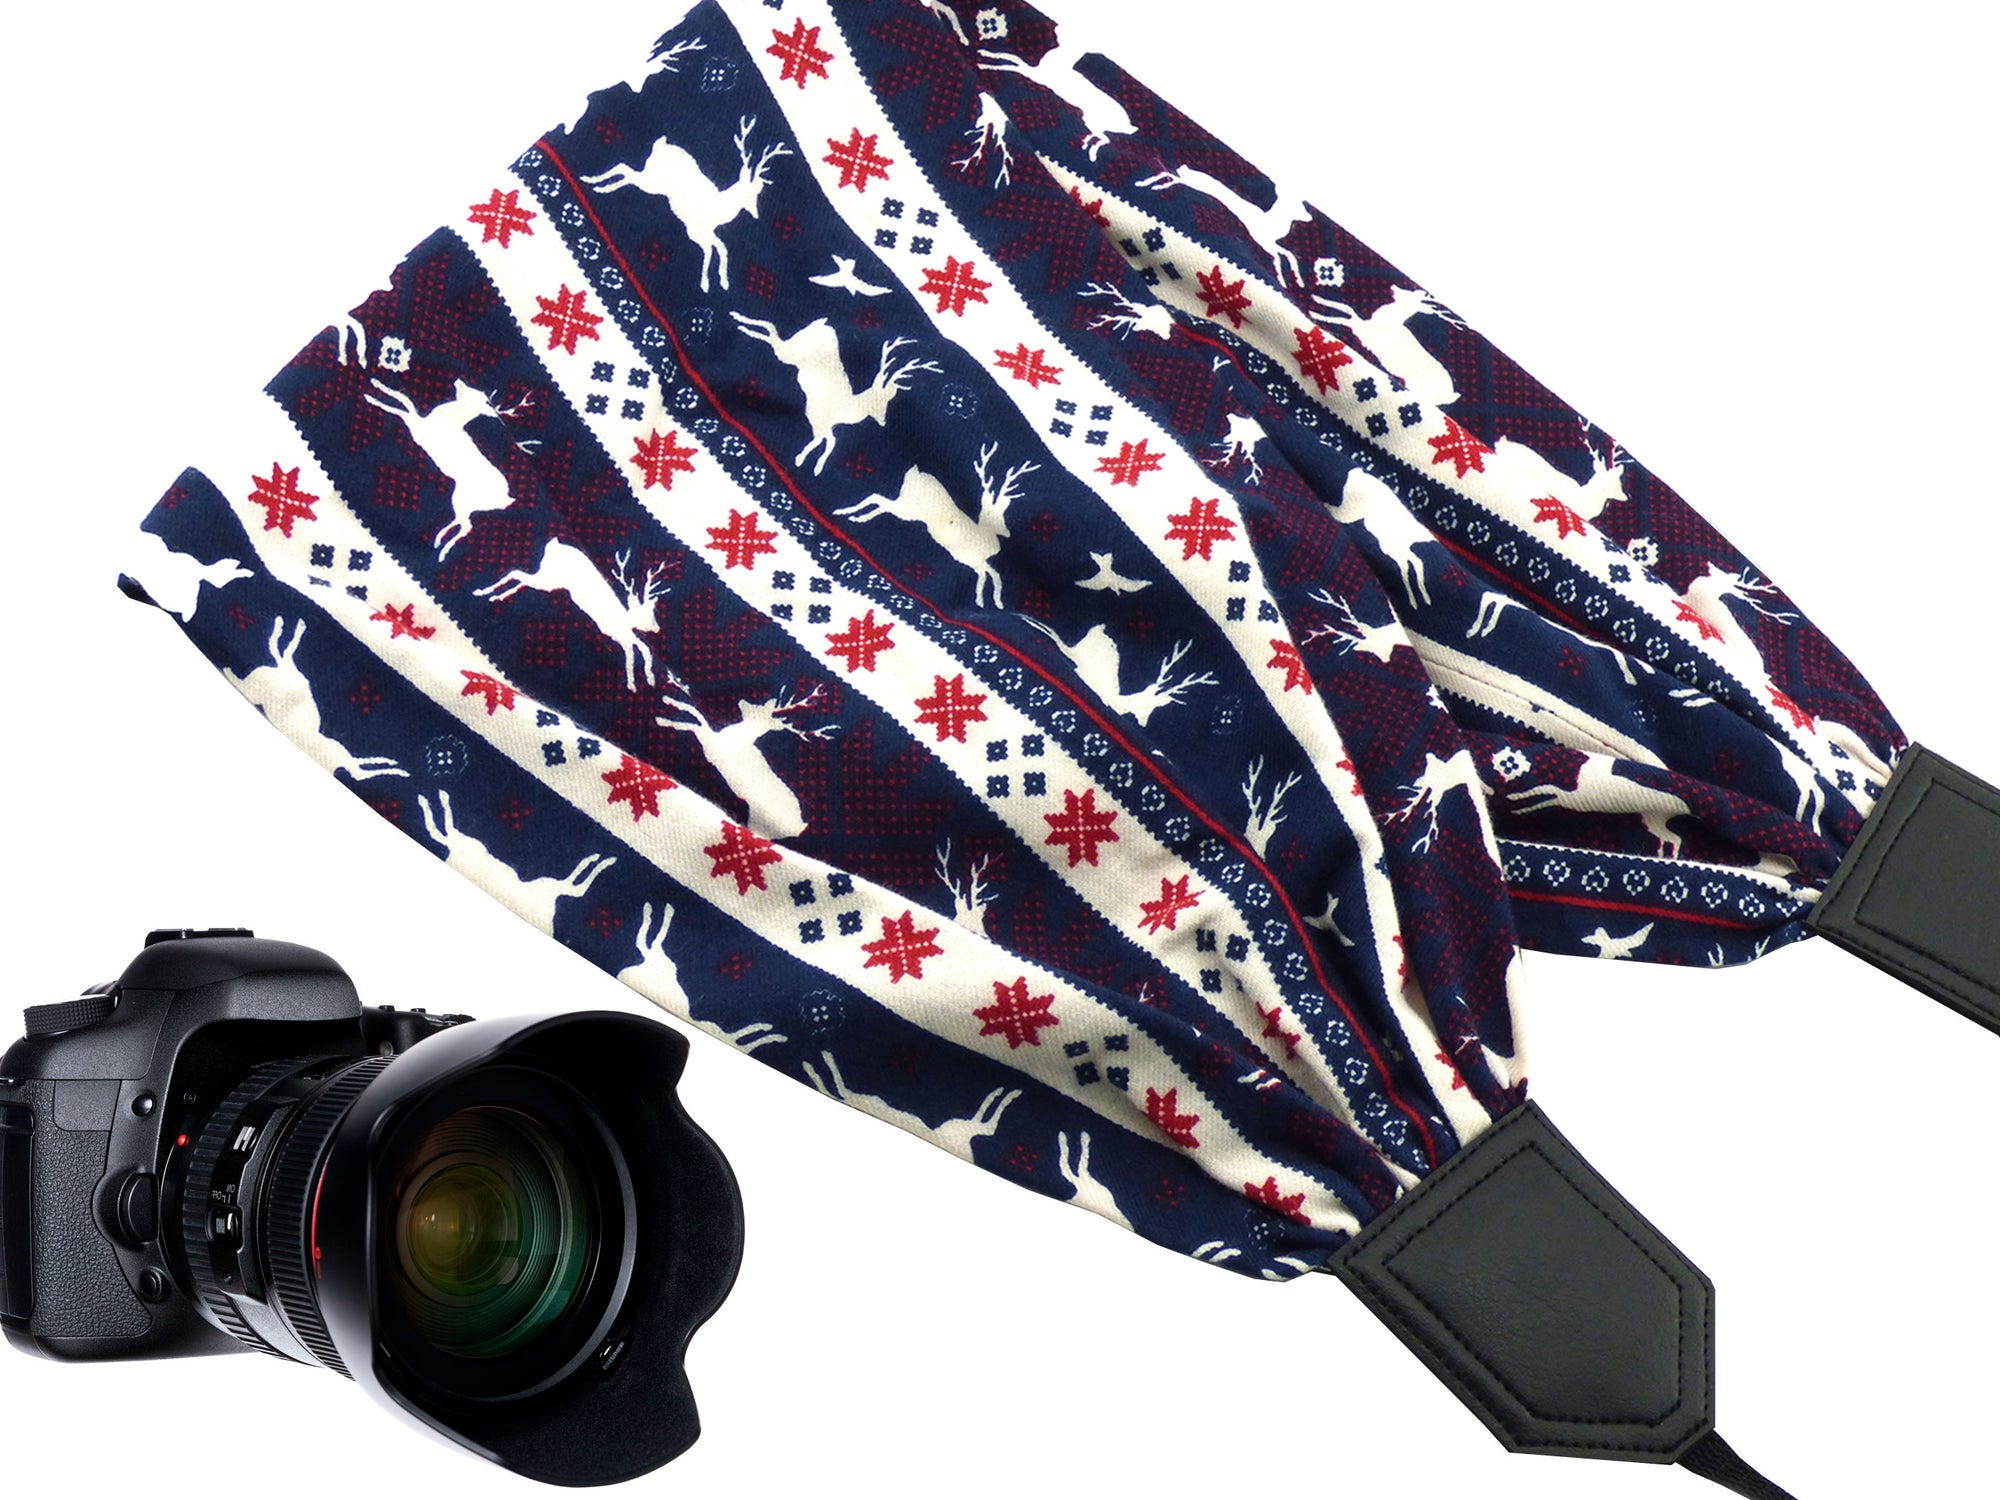 Deer scarf camera strap. Perfect Christmas gift idea!